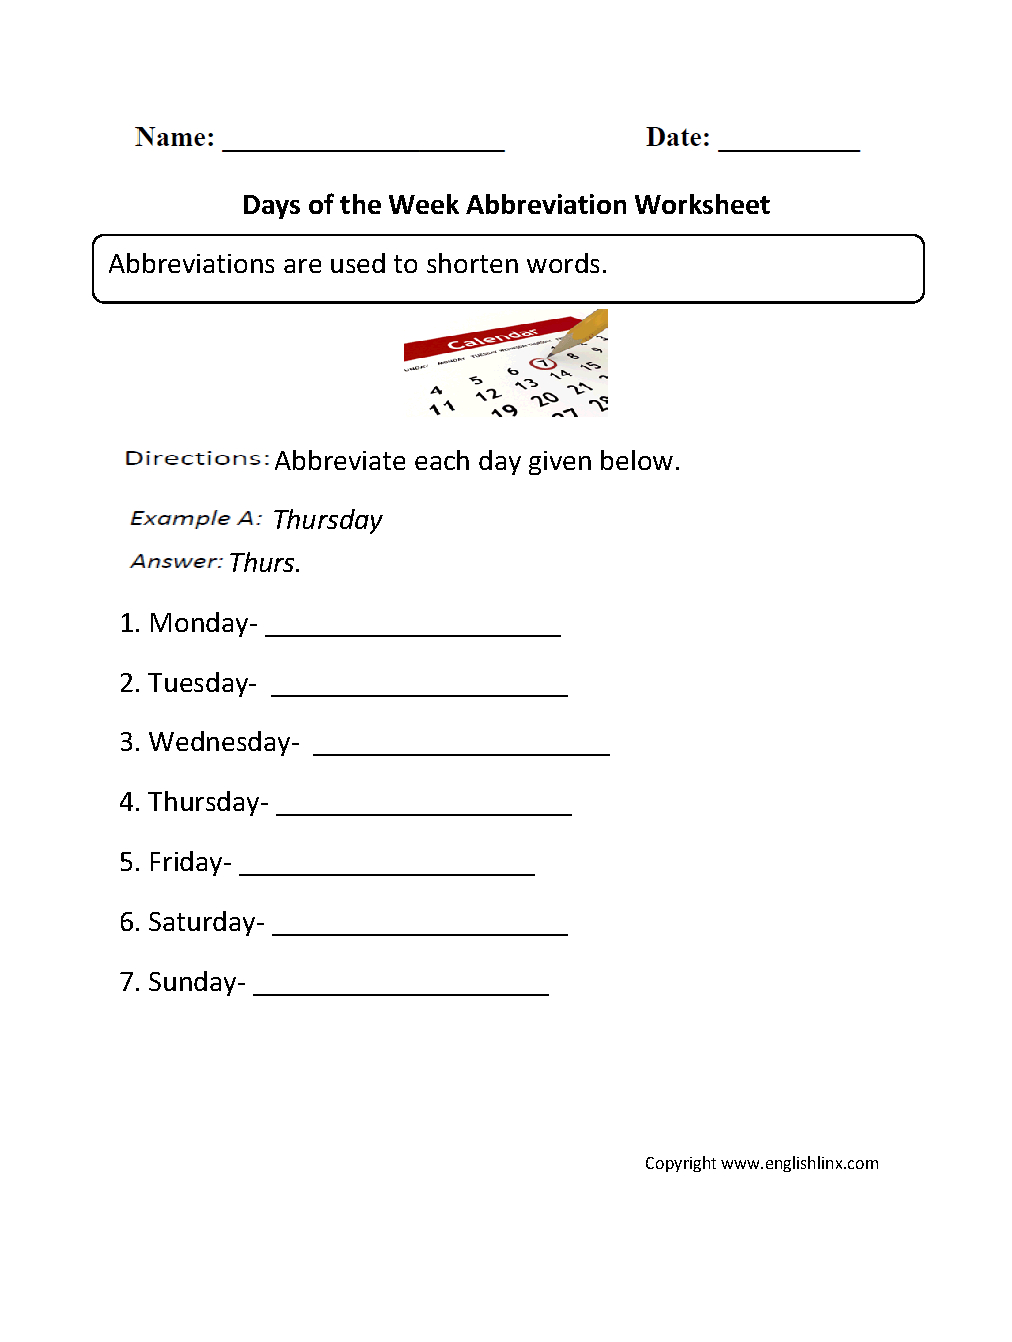 Grammar Mechanics Worksheets | Abbreviation Worksheets | Free Printable Abbreviation Worksheets